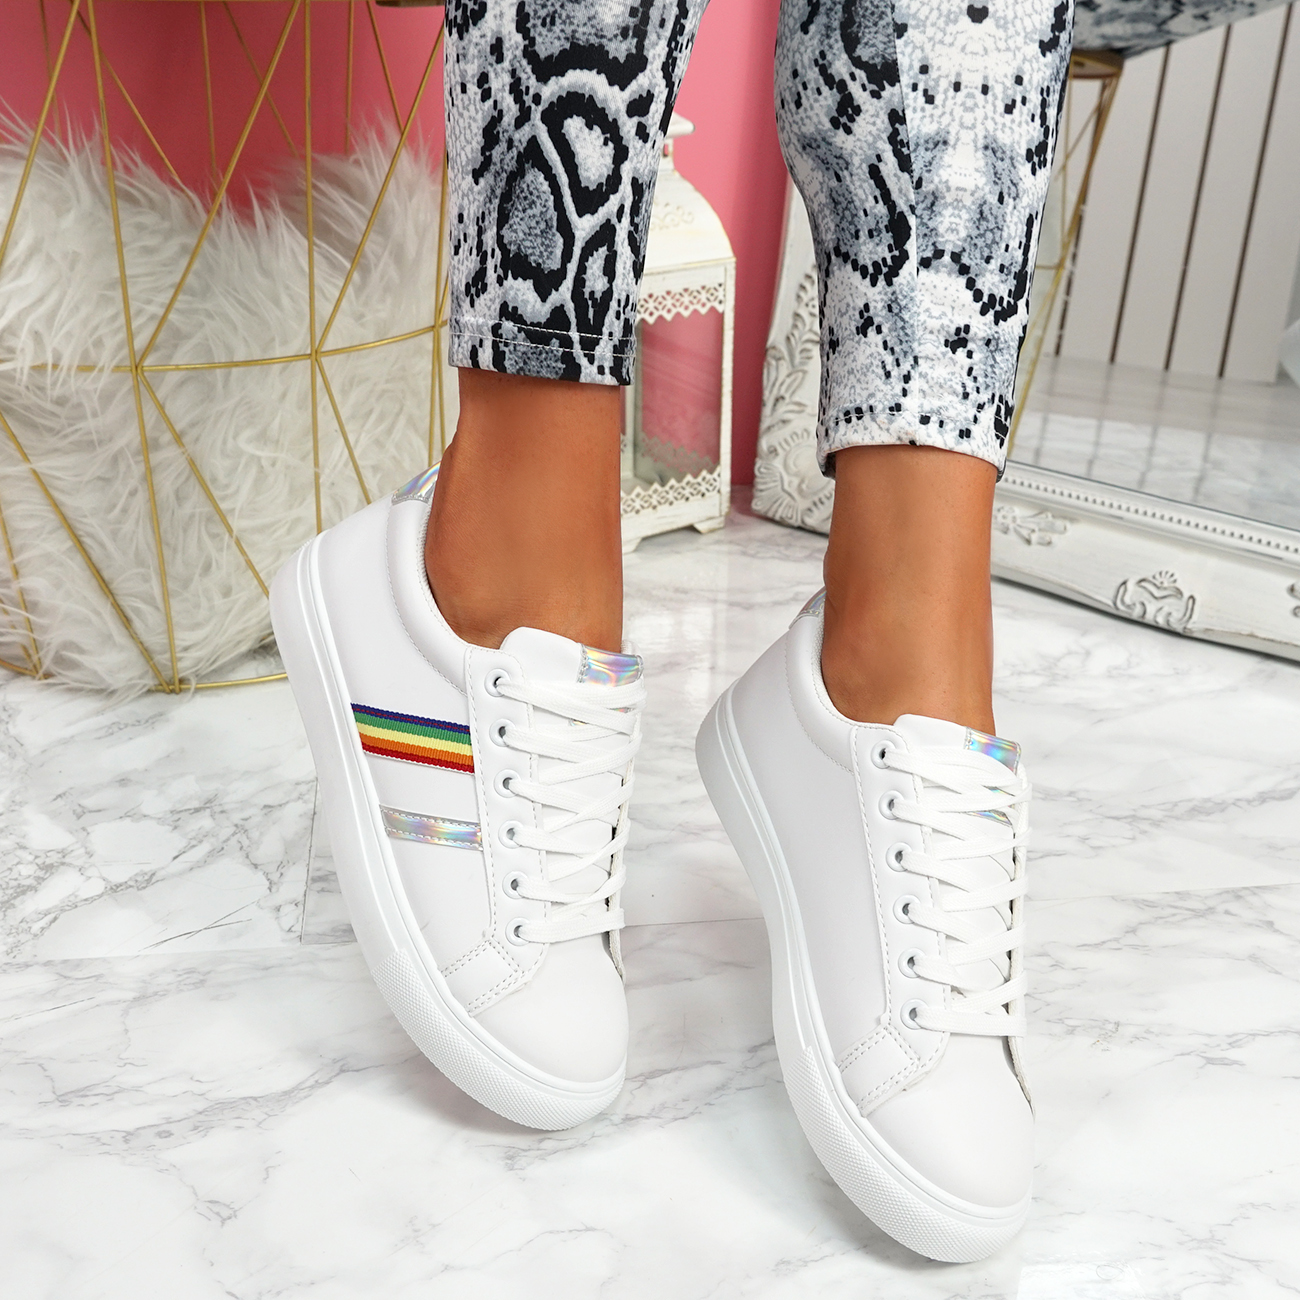 WOMENS LADIES RAINBOW TRAINERS LACE UP PLATFORM SNEAKERS WALKING WOMEN SHOES